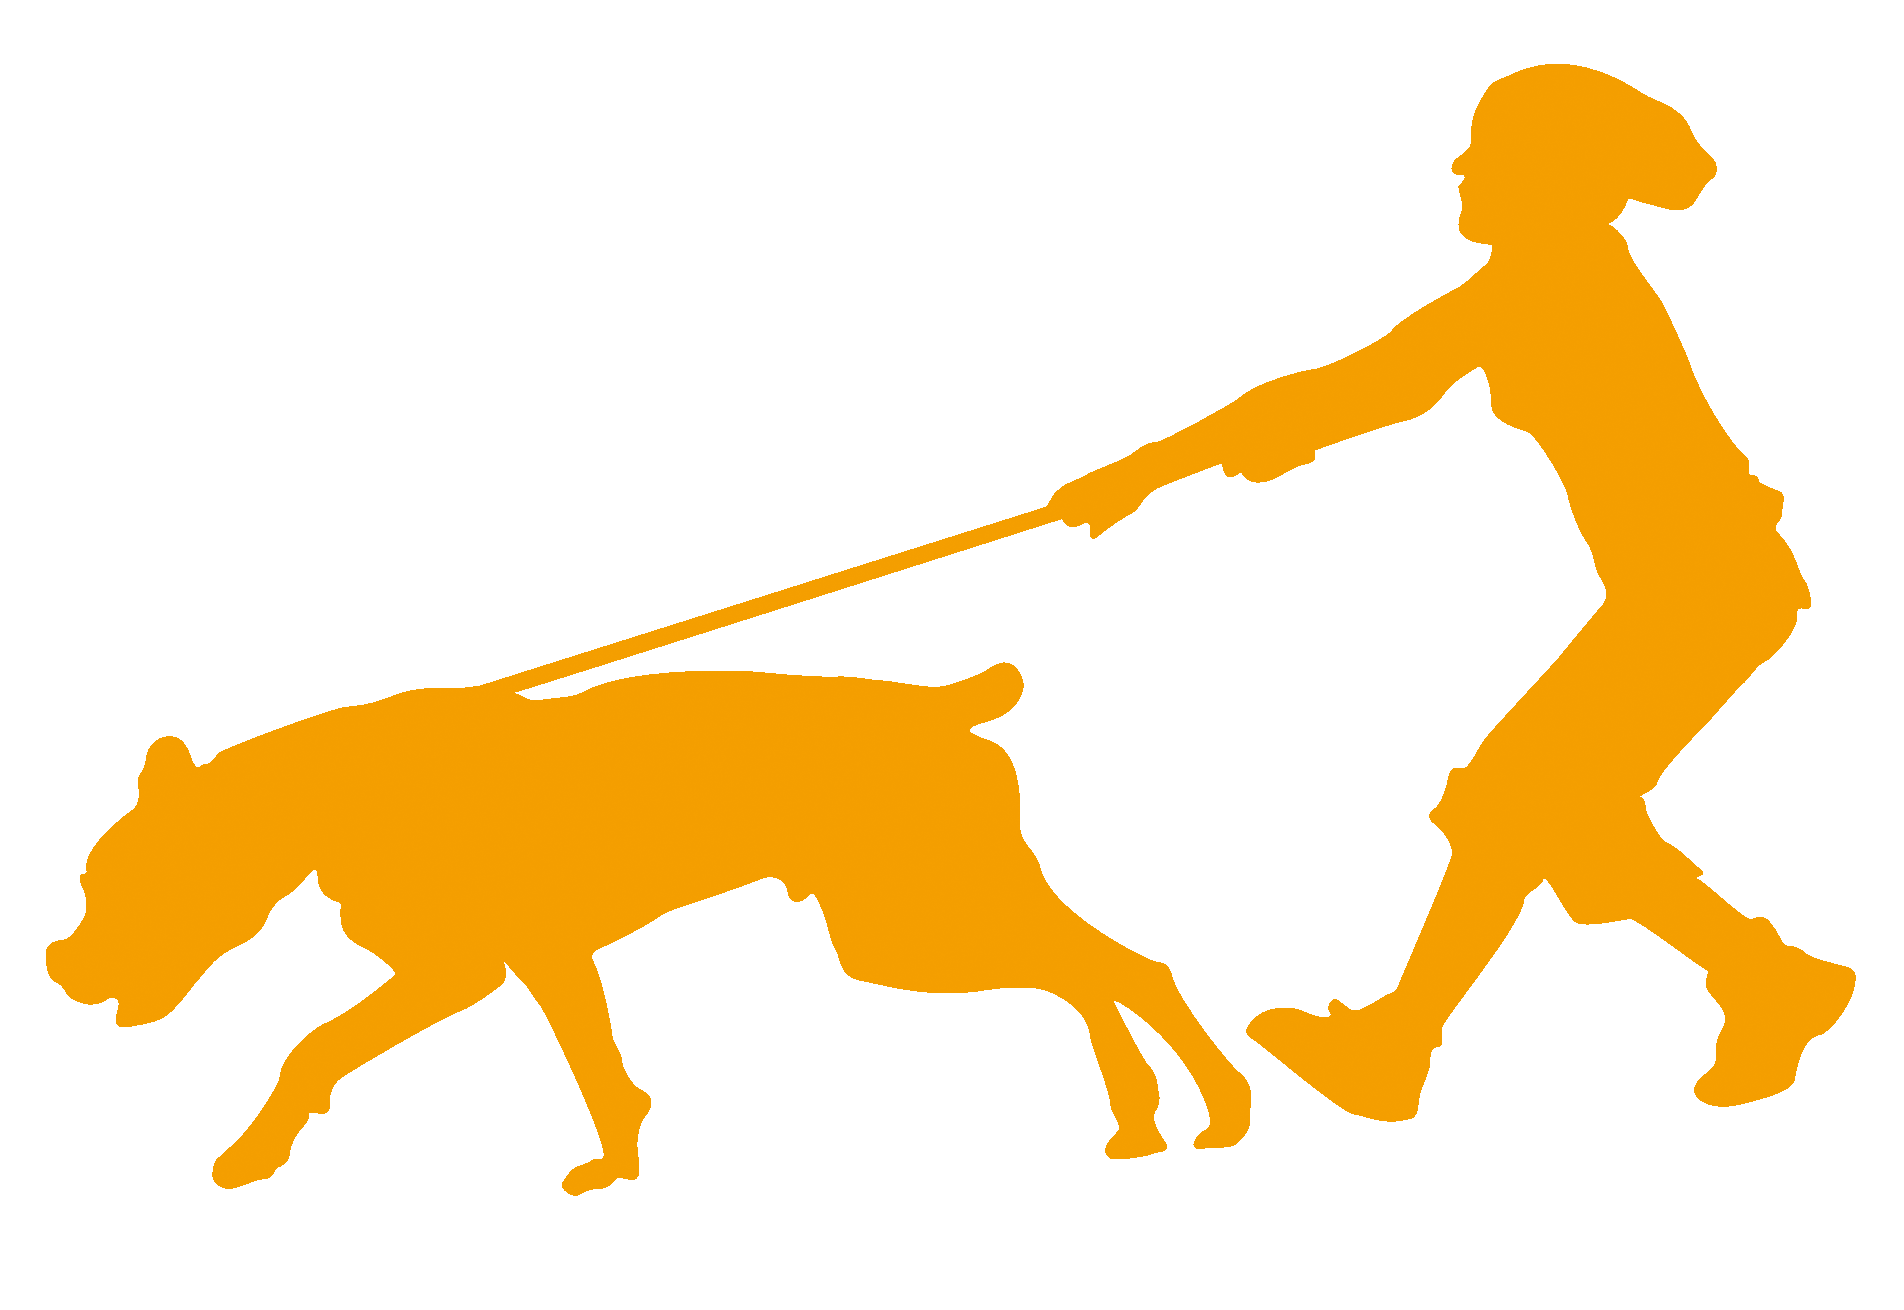 Dog running away clipart banner black and white library Silhouette Dog Walking at GetDrawings.com | Free for personal use ... banner black and white library